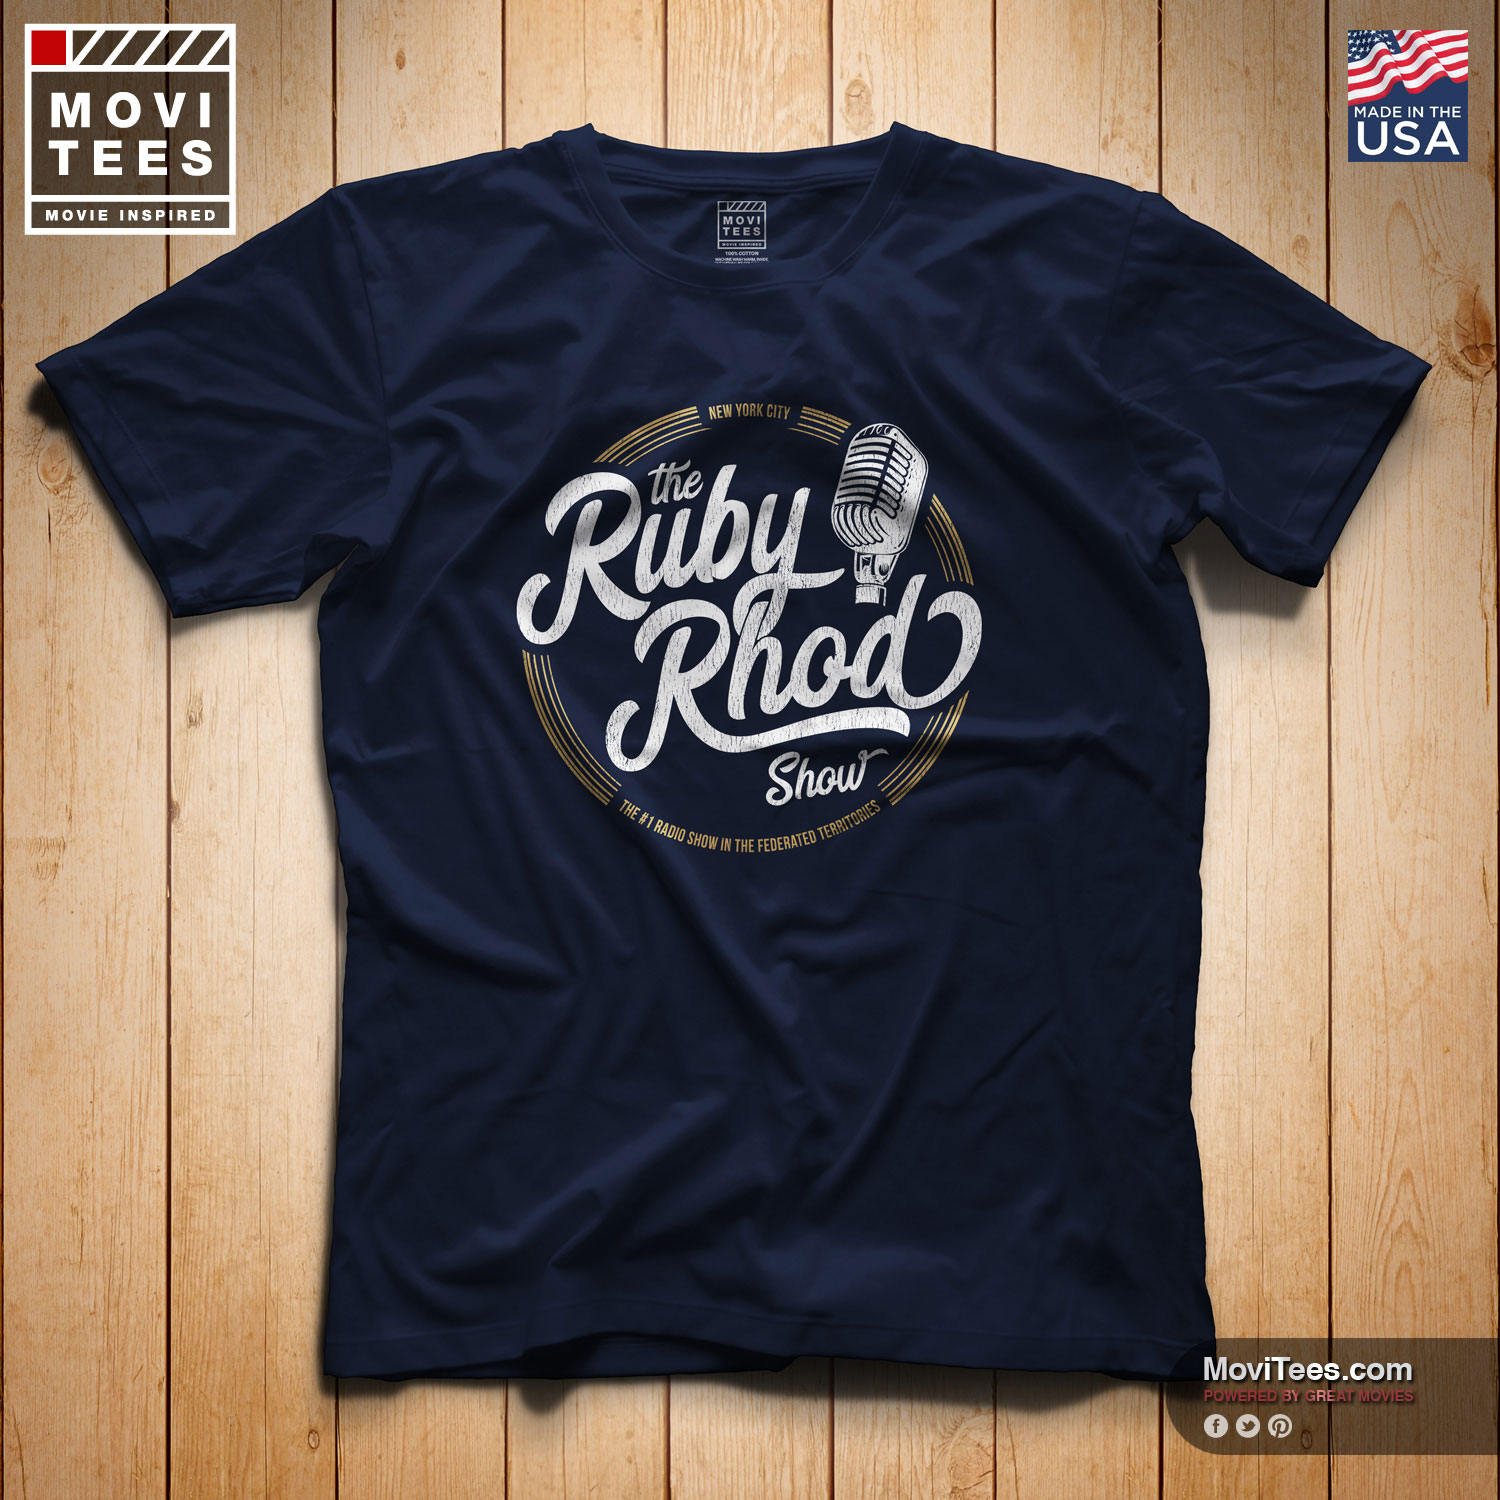 The Ruby Rhod Show T-Shirt